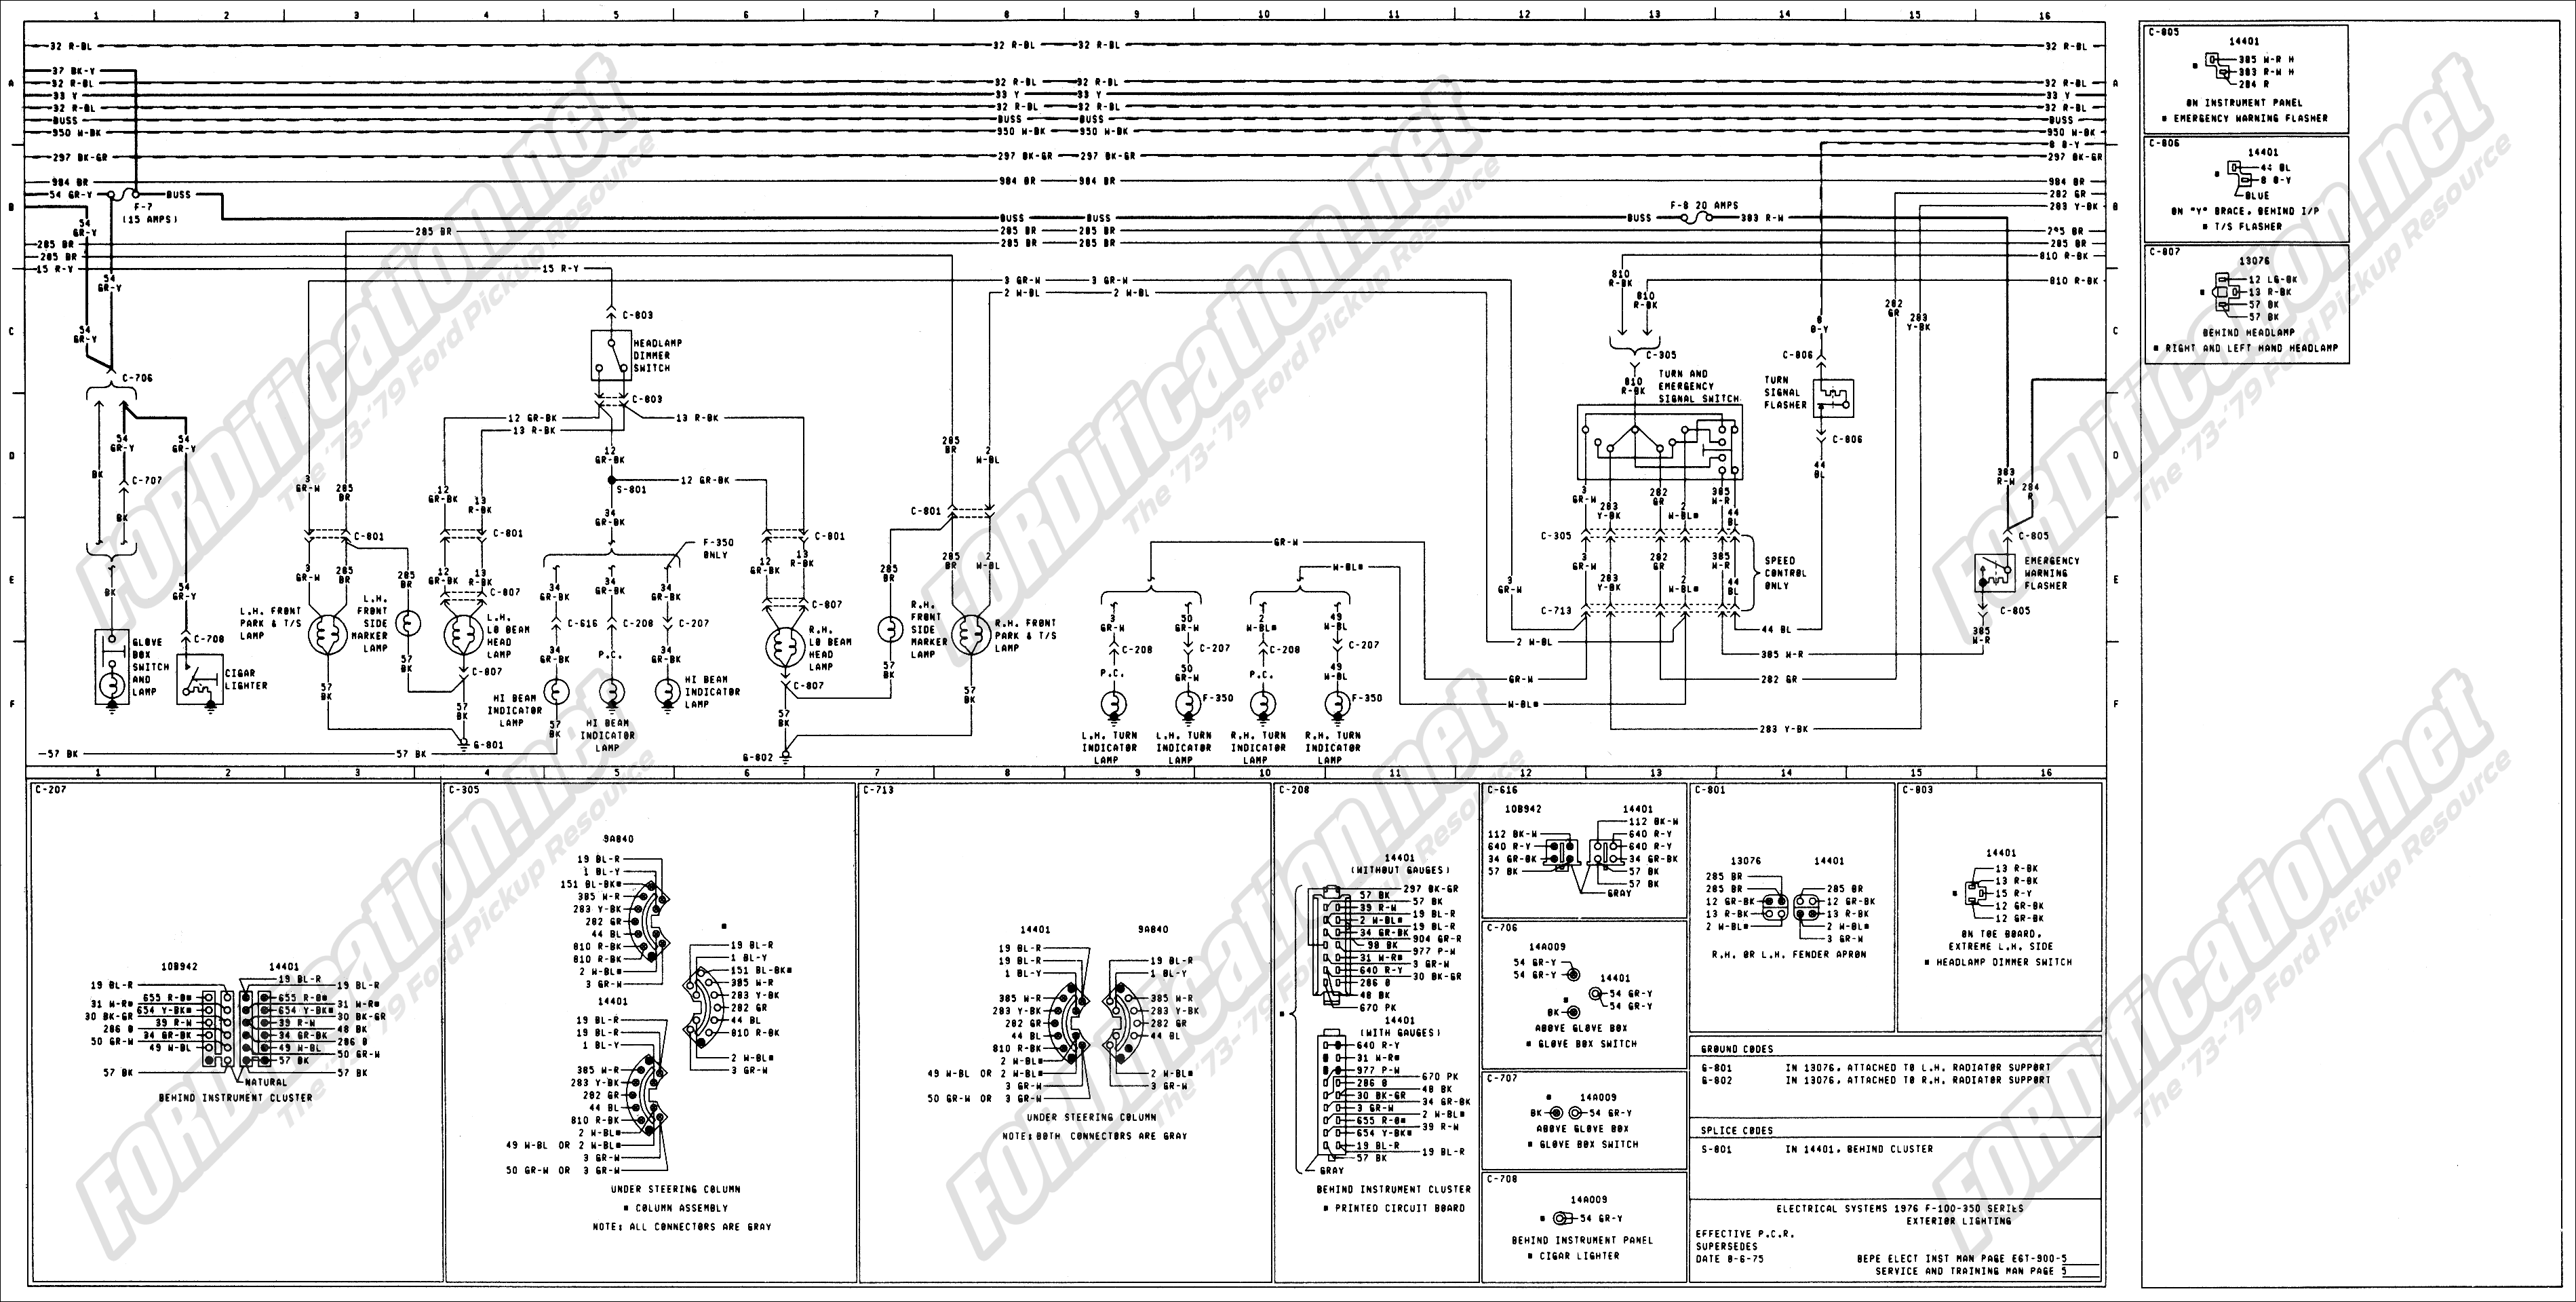 Ford Ranger Wiring Diagram Tail Light on ford brake light wiring diagram, ford f-350 wiring diagram, ford truck wiring diagrams, ford ranger tail light assembly, rewiring a boat diagram, ford ranger turn signal diagram, ford ranger 2.9 wiring-diagram, ford ranger fuse diagram, ford ranger tail light plug, century boats lights diagram, ford ranger tail light connectors, ford econoline e350 fuse diagram for 2009, ford ranger trailer wiring harness, ranger boat livewell diagram, ford super duty trailer wiring diagram, ford brake switch diagram, 2002 ford explorer power window wiring diagram, ford ranger tail light cover, ford trailer plug wiring diagram, ford wiring harness diagrams,